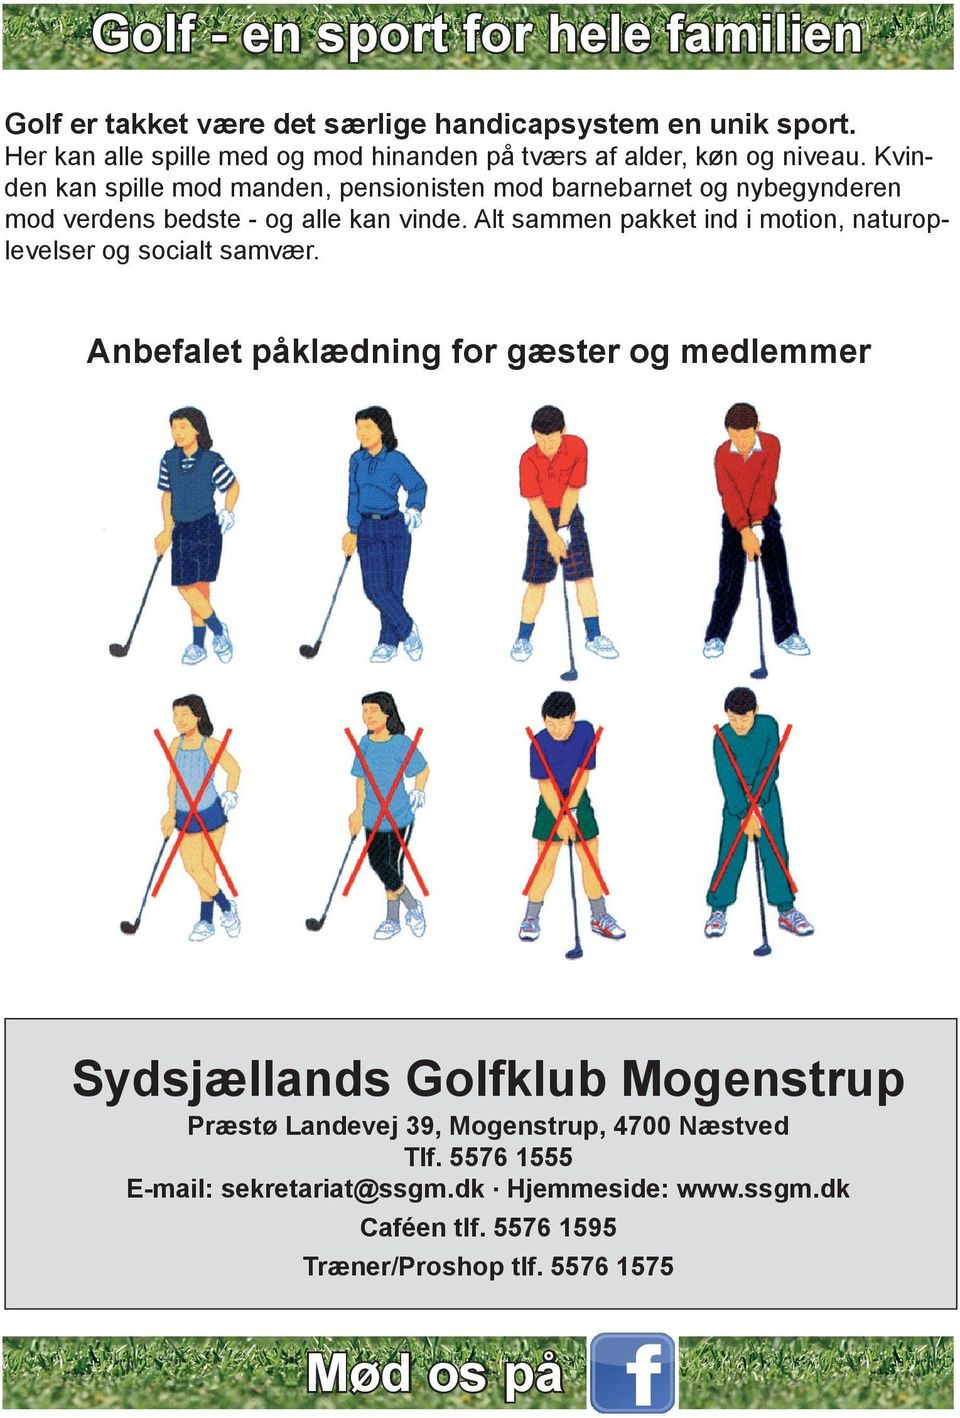 Alt sammen pakket ind i motion, naturoplevelser og socialt samvær. Dress code for members and guests of the Golf Club.